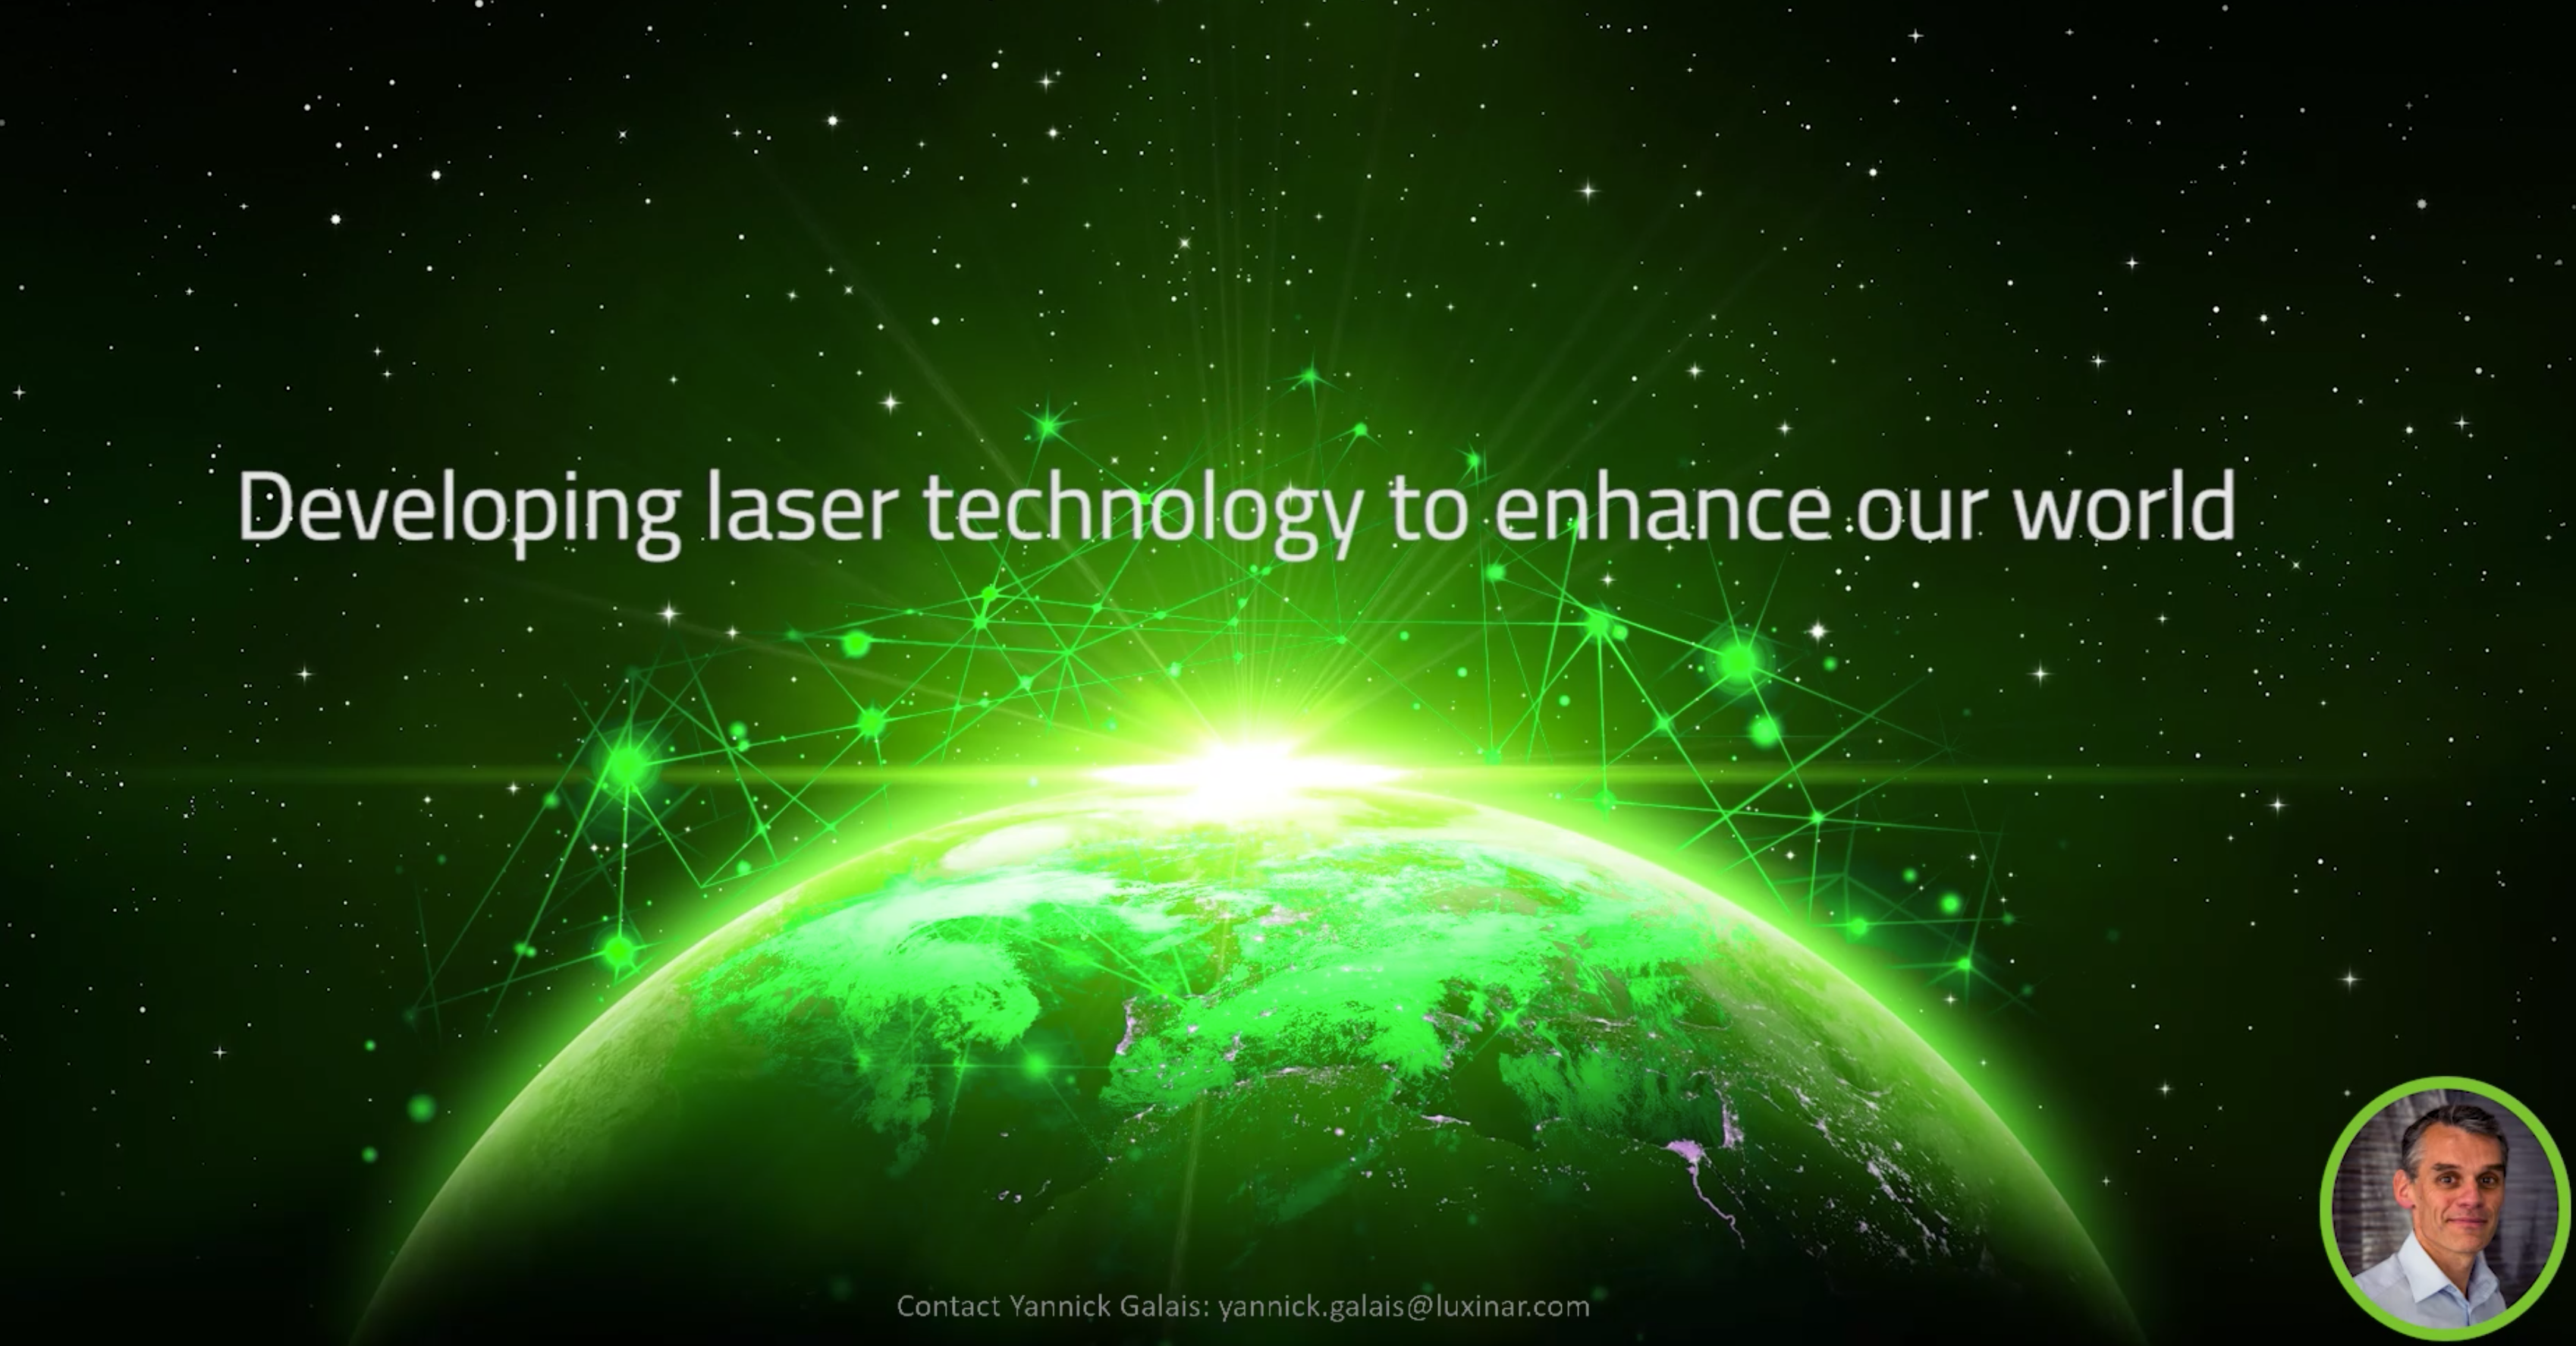 Developing laser technology to enhance our world